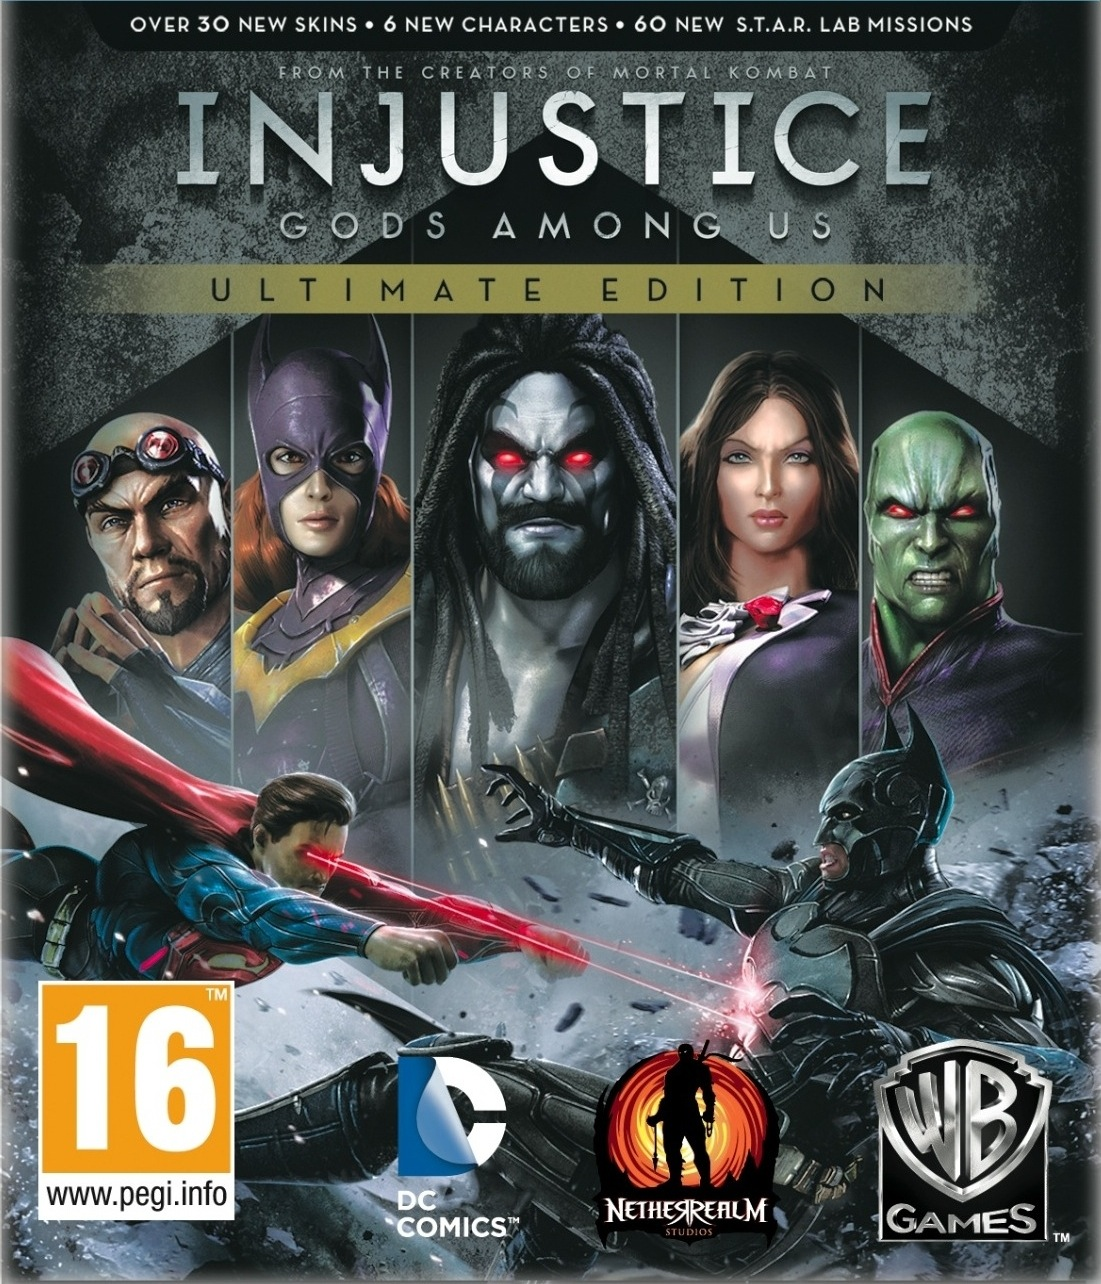 Injustice: Gods Among Us. Ultimate Ed. (Steam) + Gift